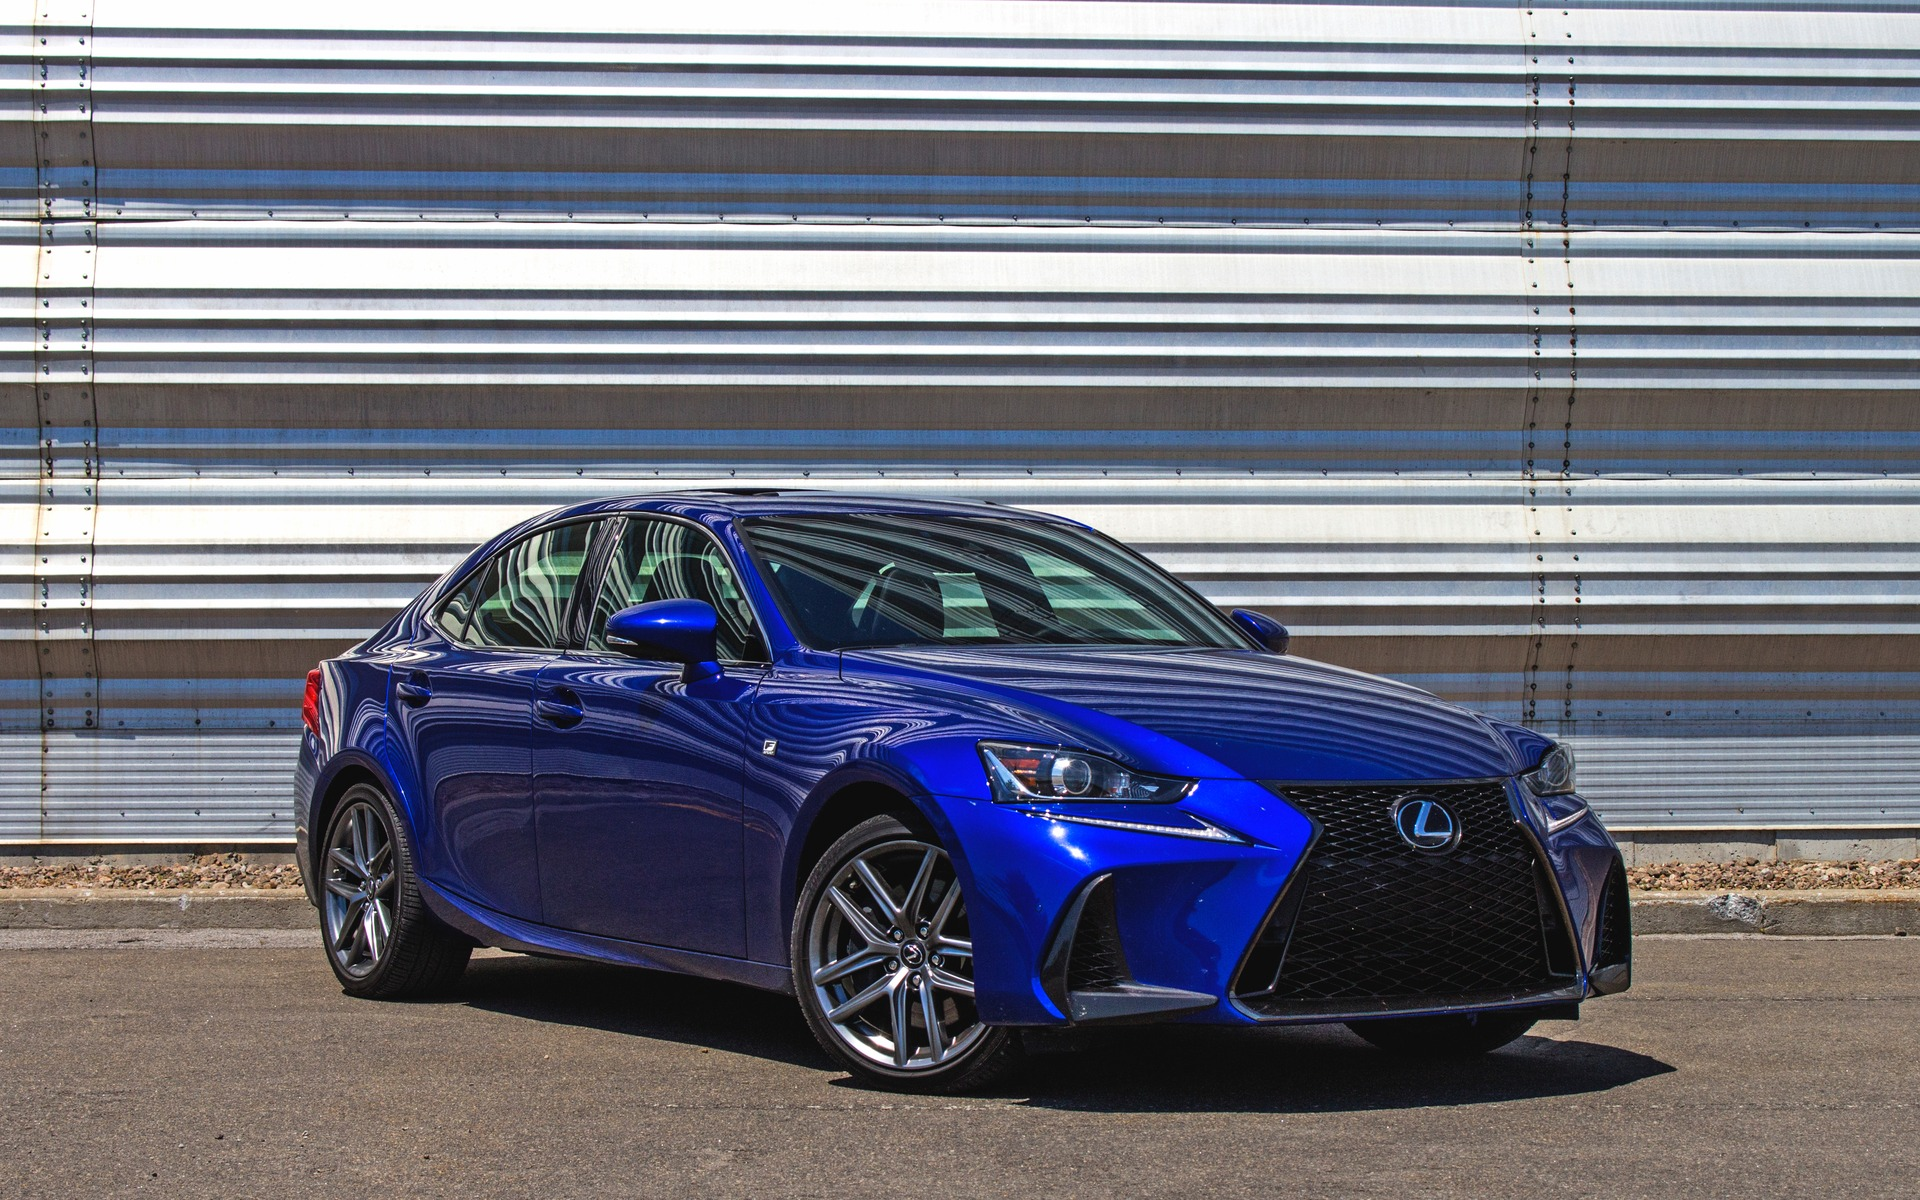 2018 Lexus IS 350 F SPORT: The 3 Series BMW Used To Build